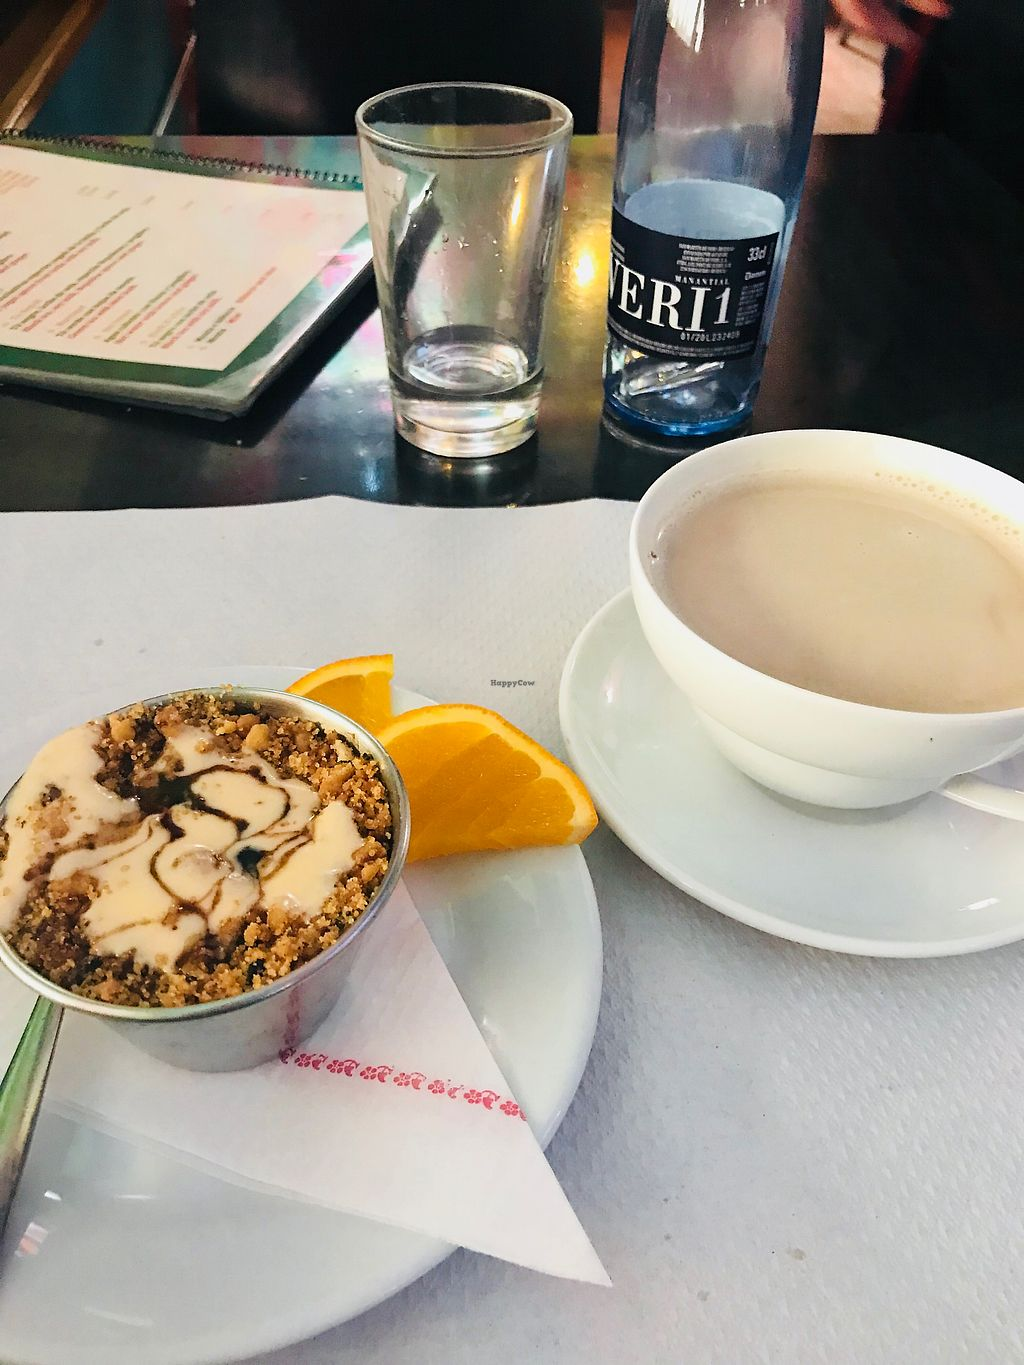 """Photo of Veggie Garden - Dels Angels  by <a href=""""/members/profile/doctorjay"""">doctorjay</a> <br/>Apple crumble and Nepalese tea <br/> April 2, 2018  - <a href='/contact/abuse/image/28983/379803'>Report</a>"""